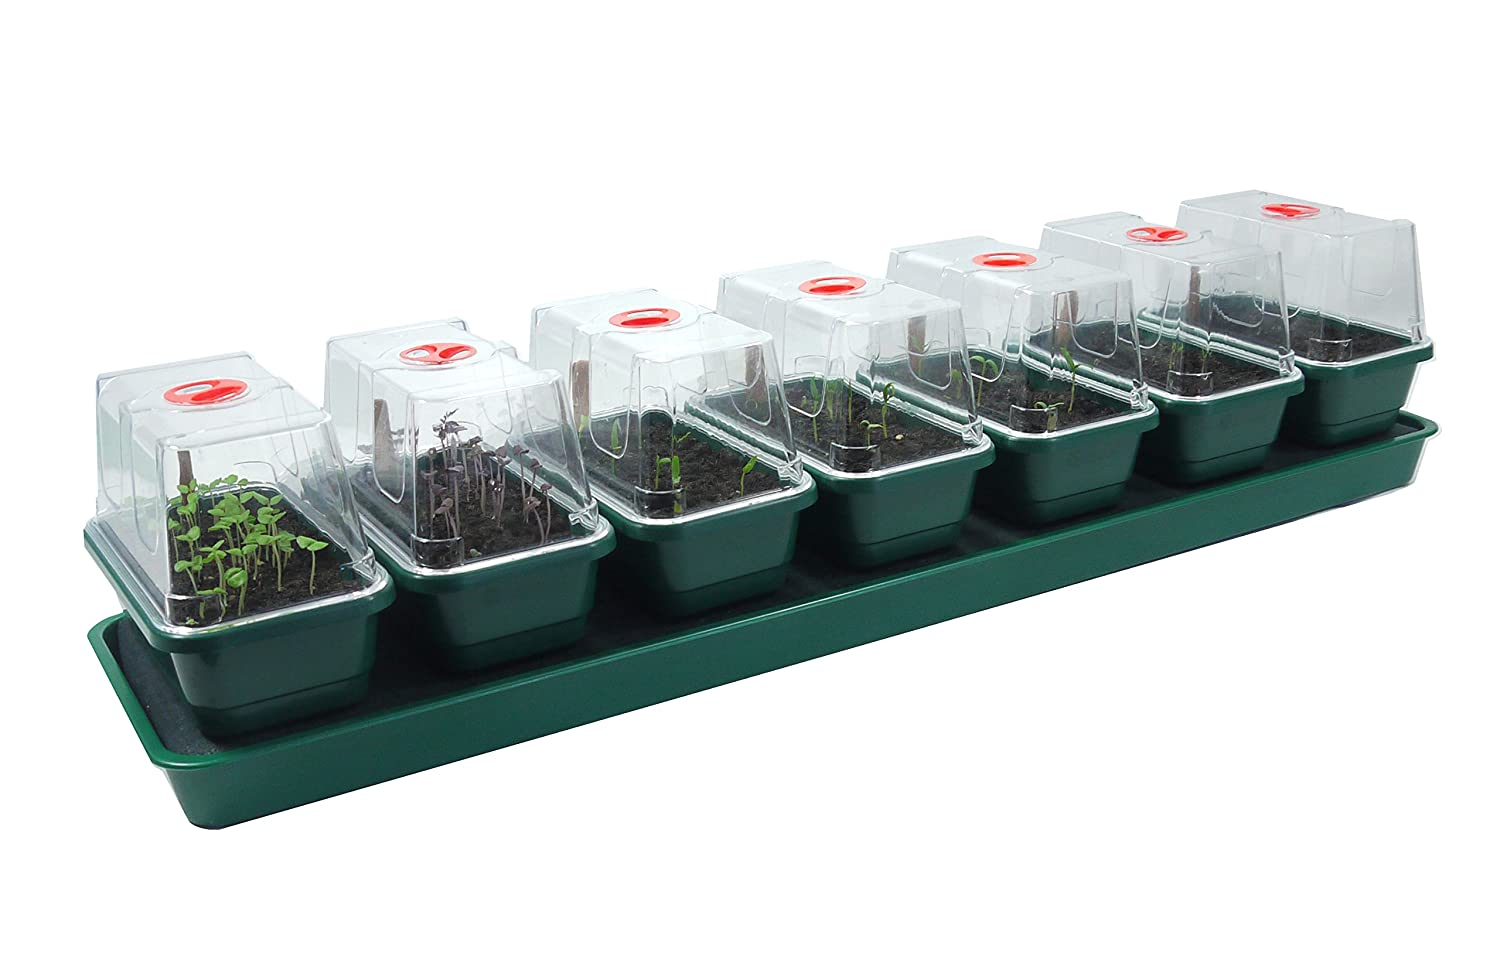 Britten & James® Self Watering Windowsill Nursery. 7 in 1 Windowsill Propagator set. Seven individual professional quality mini propagators with a unique capillary fed watering system. The clear lids have high sides so you can keep your tender plants